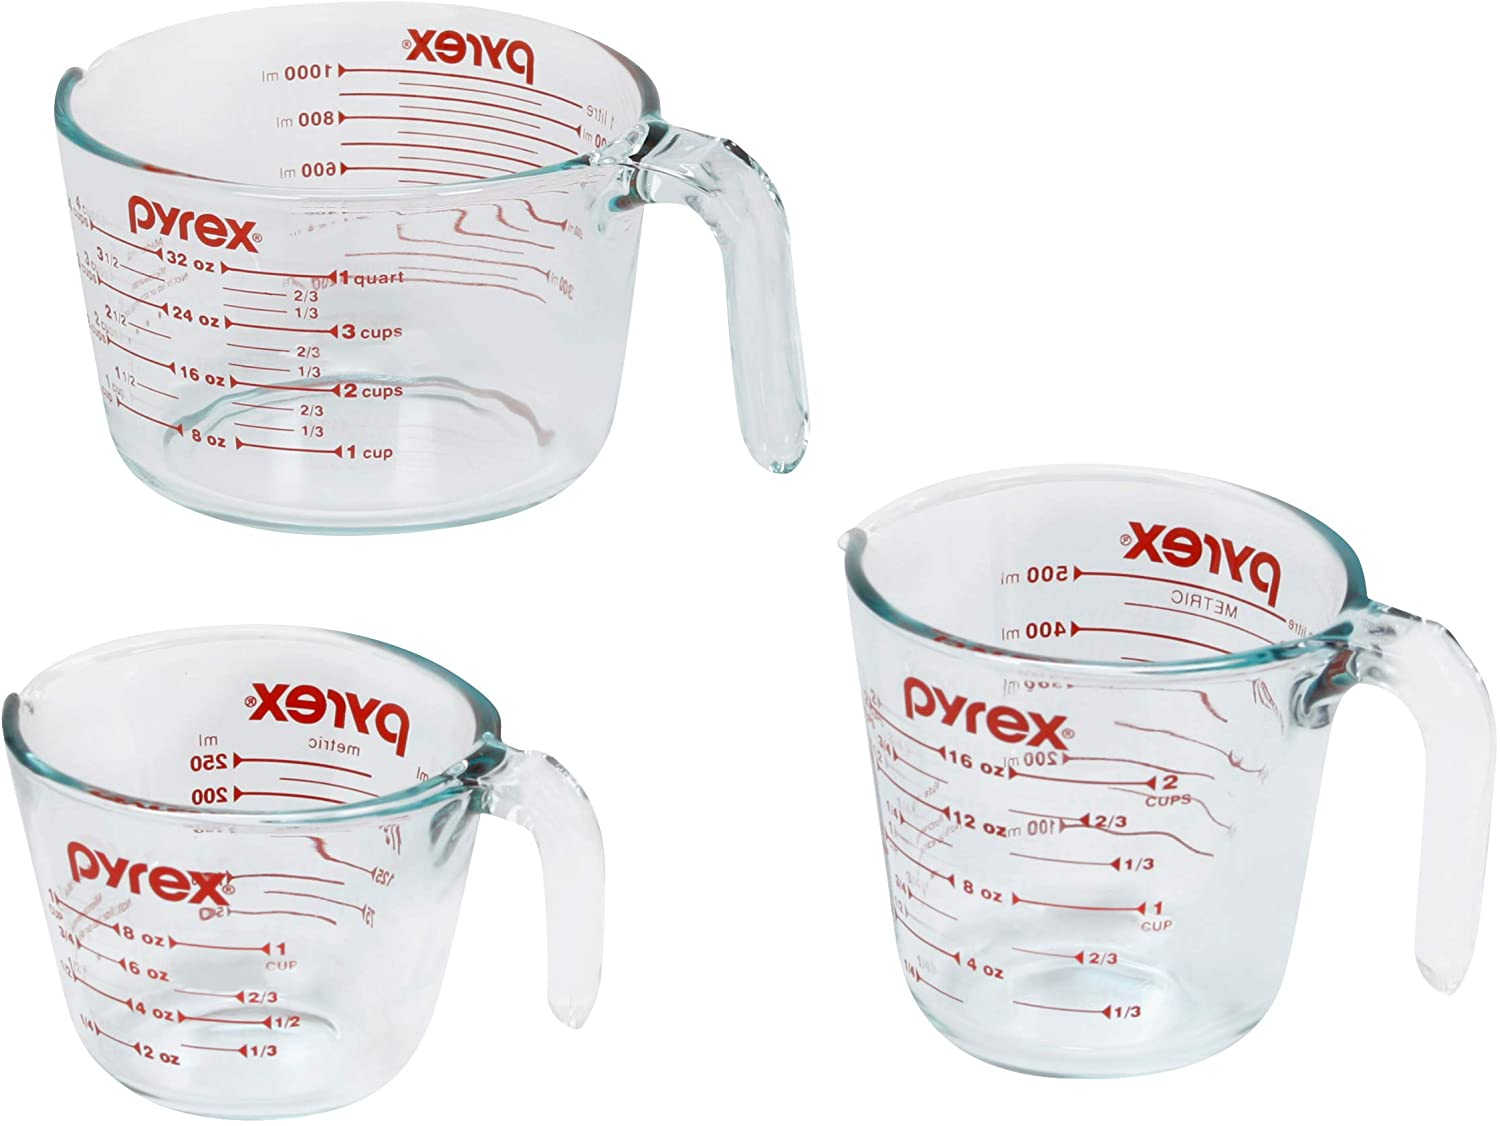 3-PIECE CLEAR PYREX MEASURING CUPS